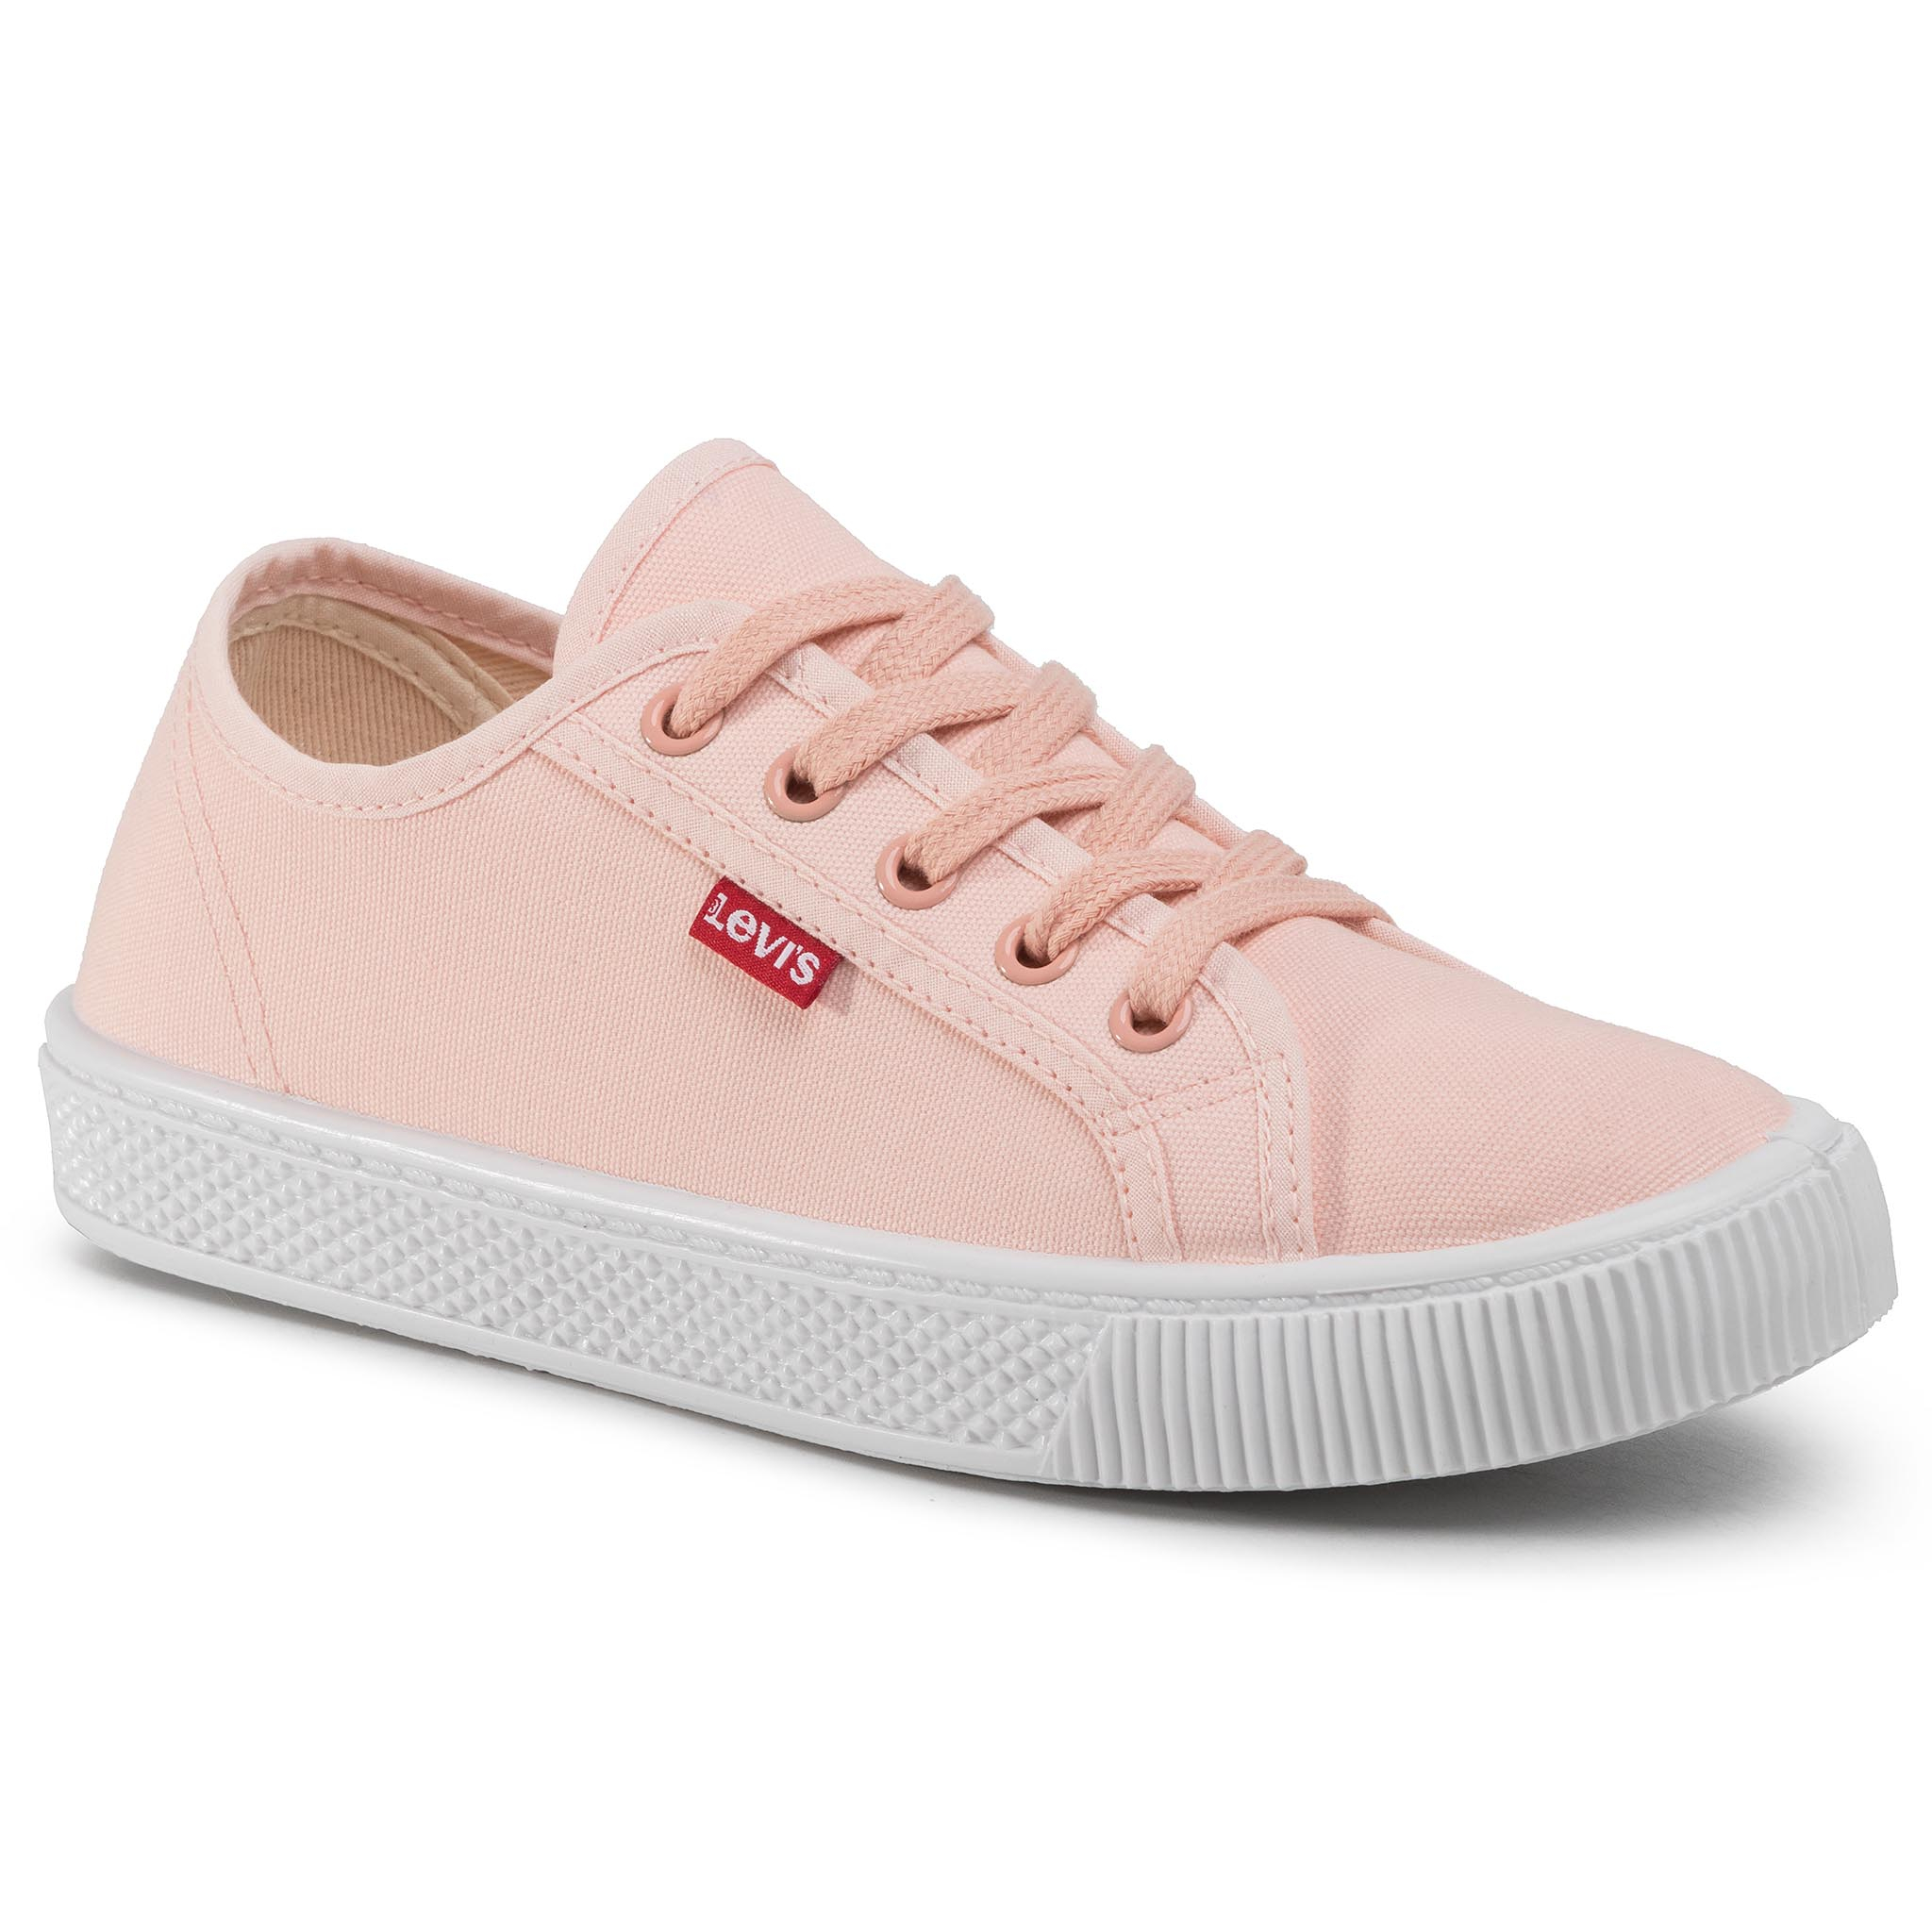 Teniși Levi's - 225849-38374-0061 Light Pink imagine epantofi.ro 2021